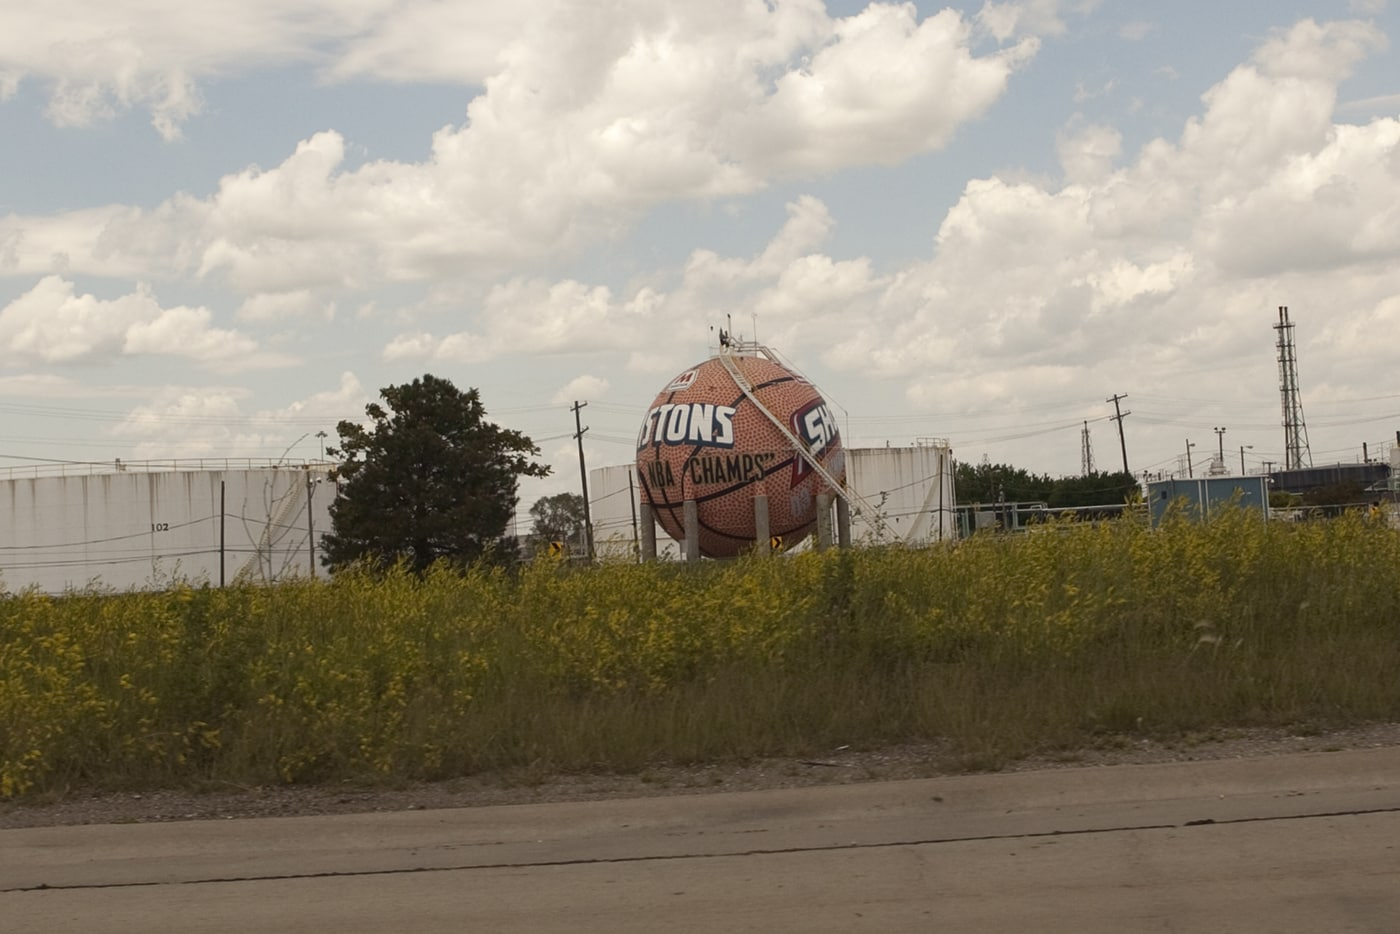 Giant basketball painted with the Detroit Pistons and WNBA Detroit Shock team logos, outside of Detroit, Michigan.